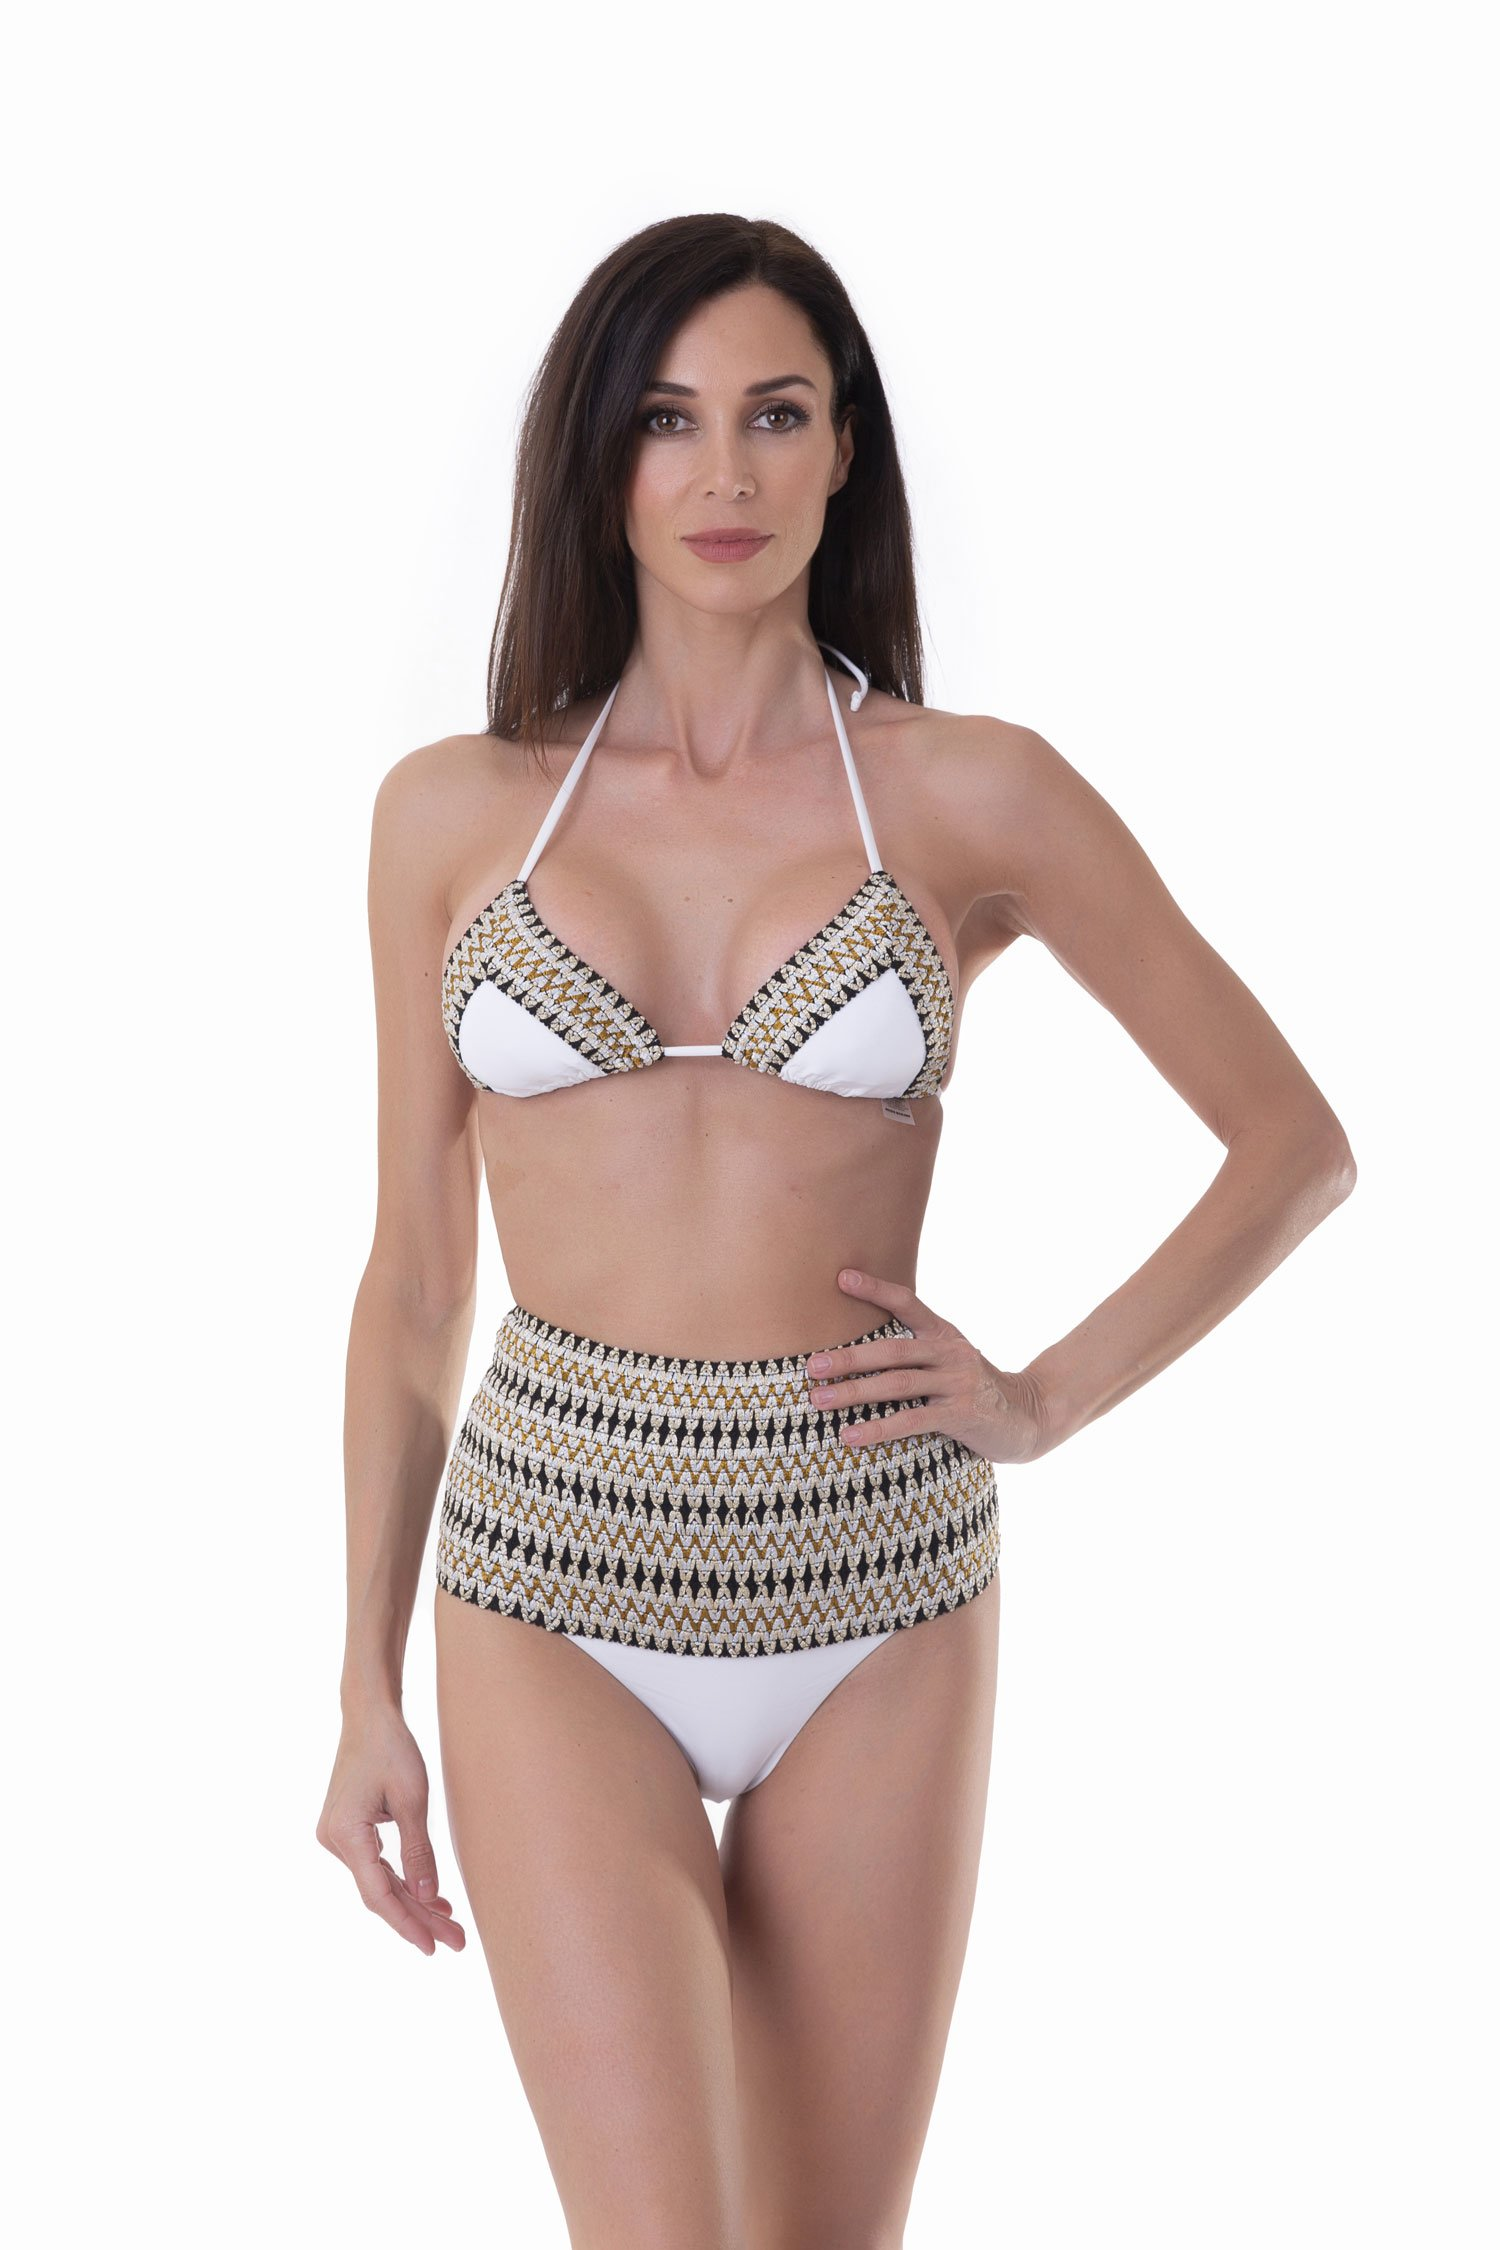 TRIANGLE BIKINI WITH LUREX ELASTICS AND HIGH-WAIST BOTTOM - Bianco White 001